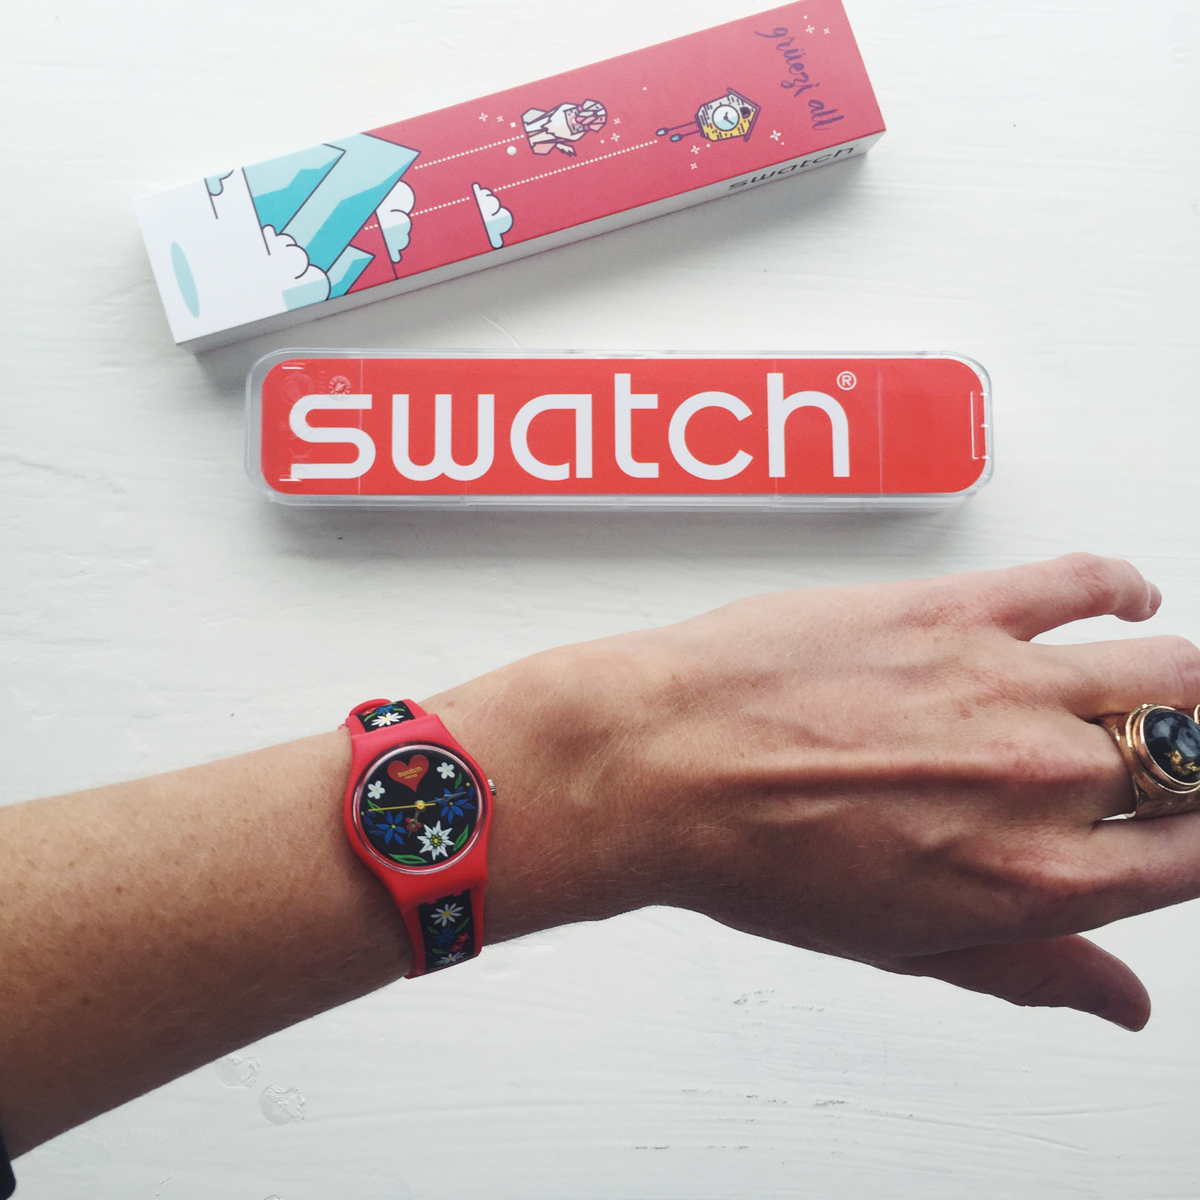 Swatch Store at Manchester Arndale